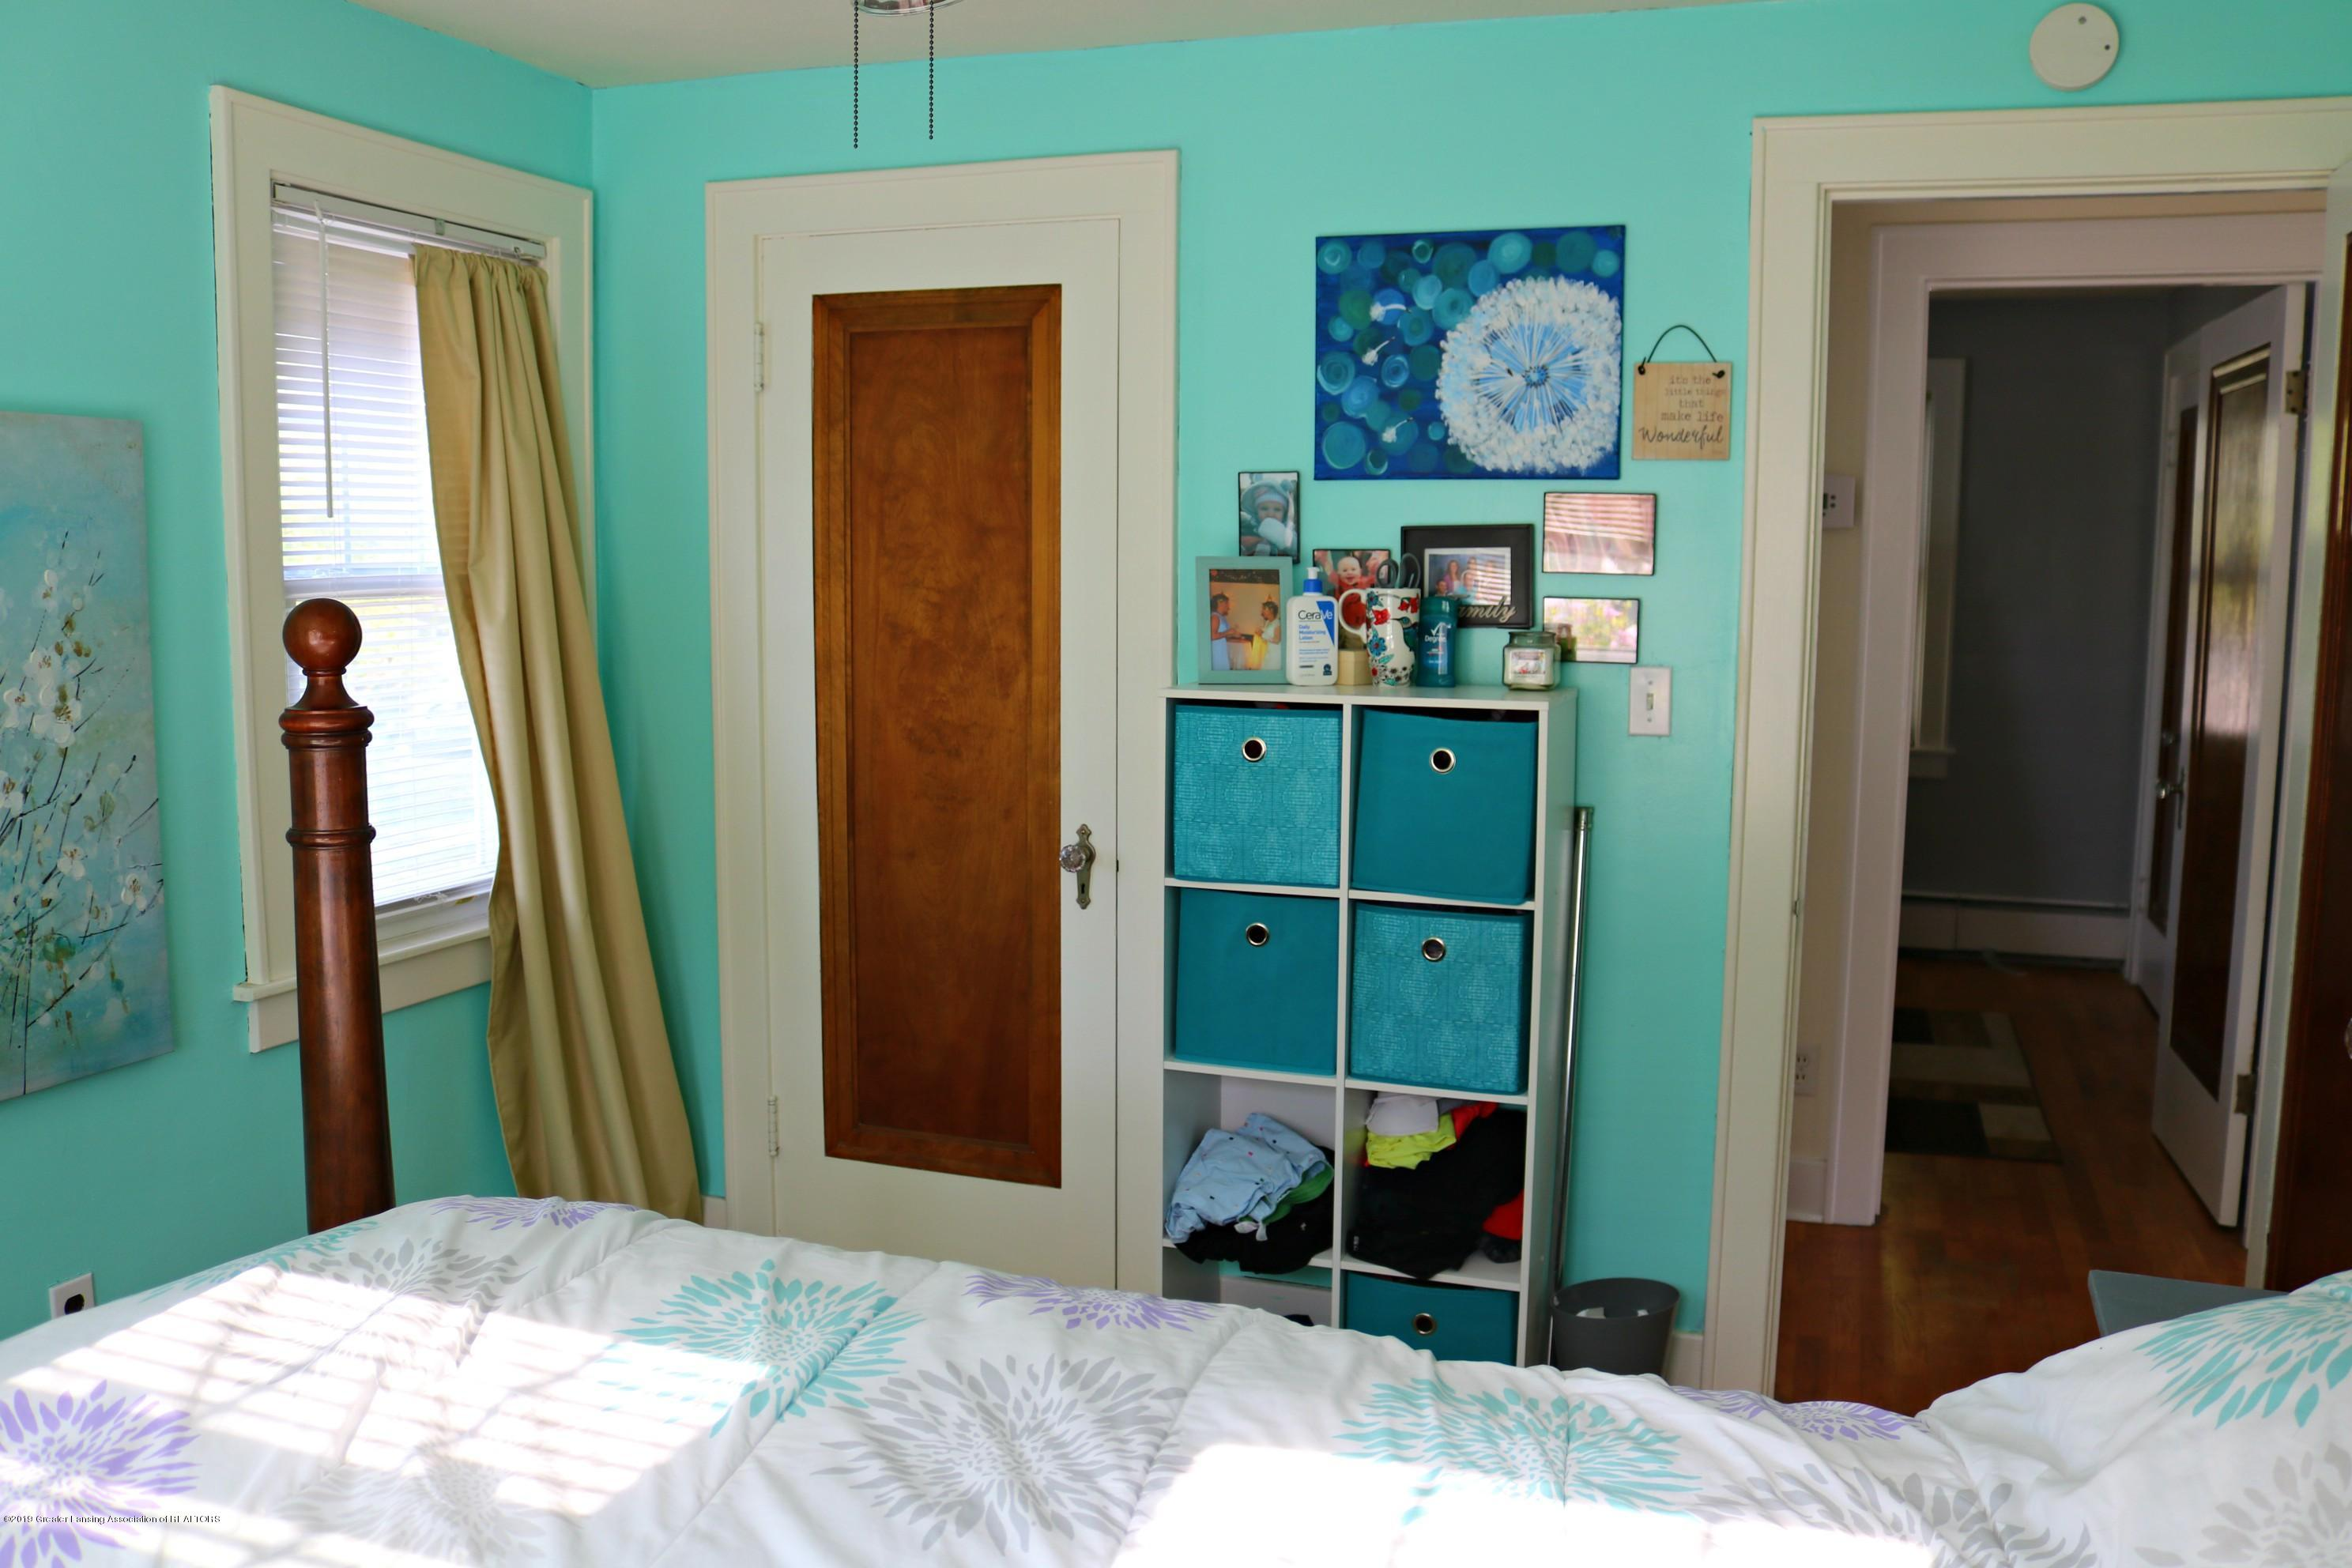 703 N Magnolia Ave - Bedroom 2 - 12